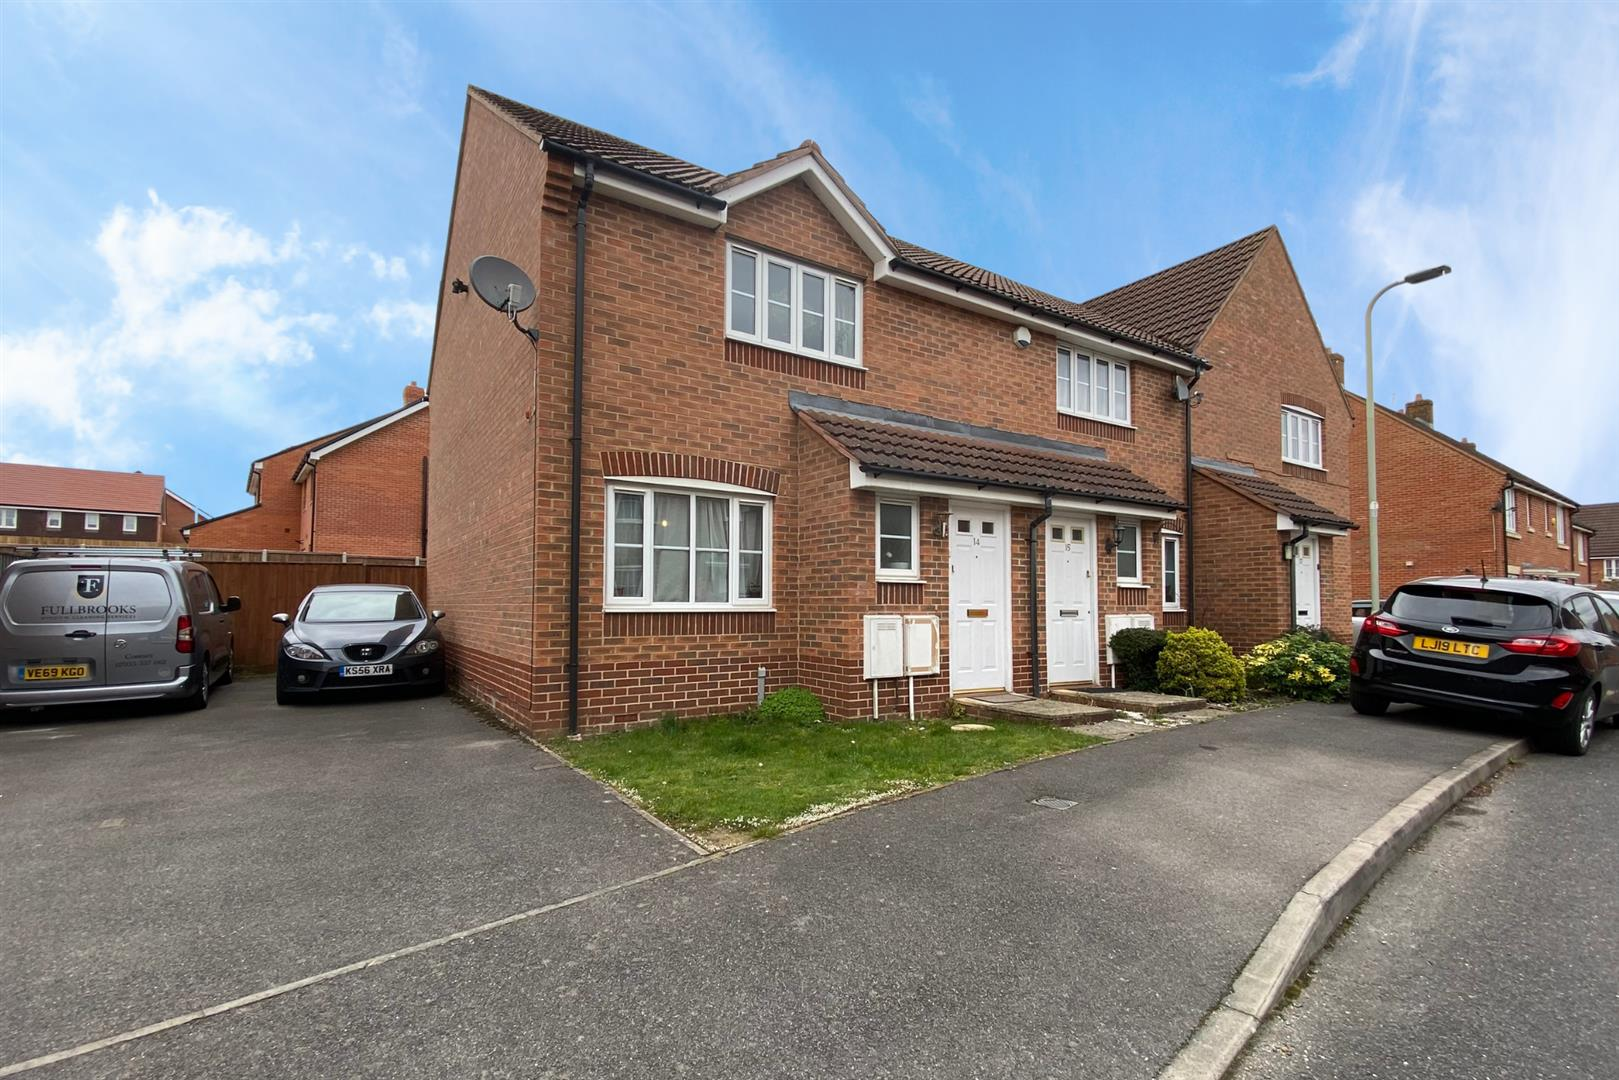 2 bed end of terrace for sale in Shinfield, RG2